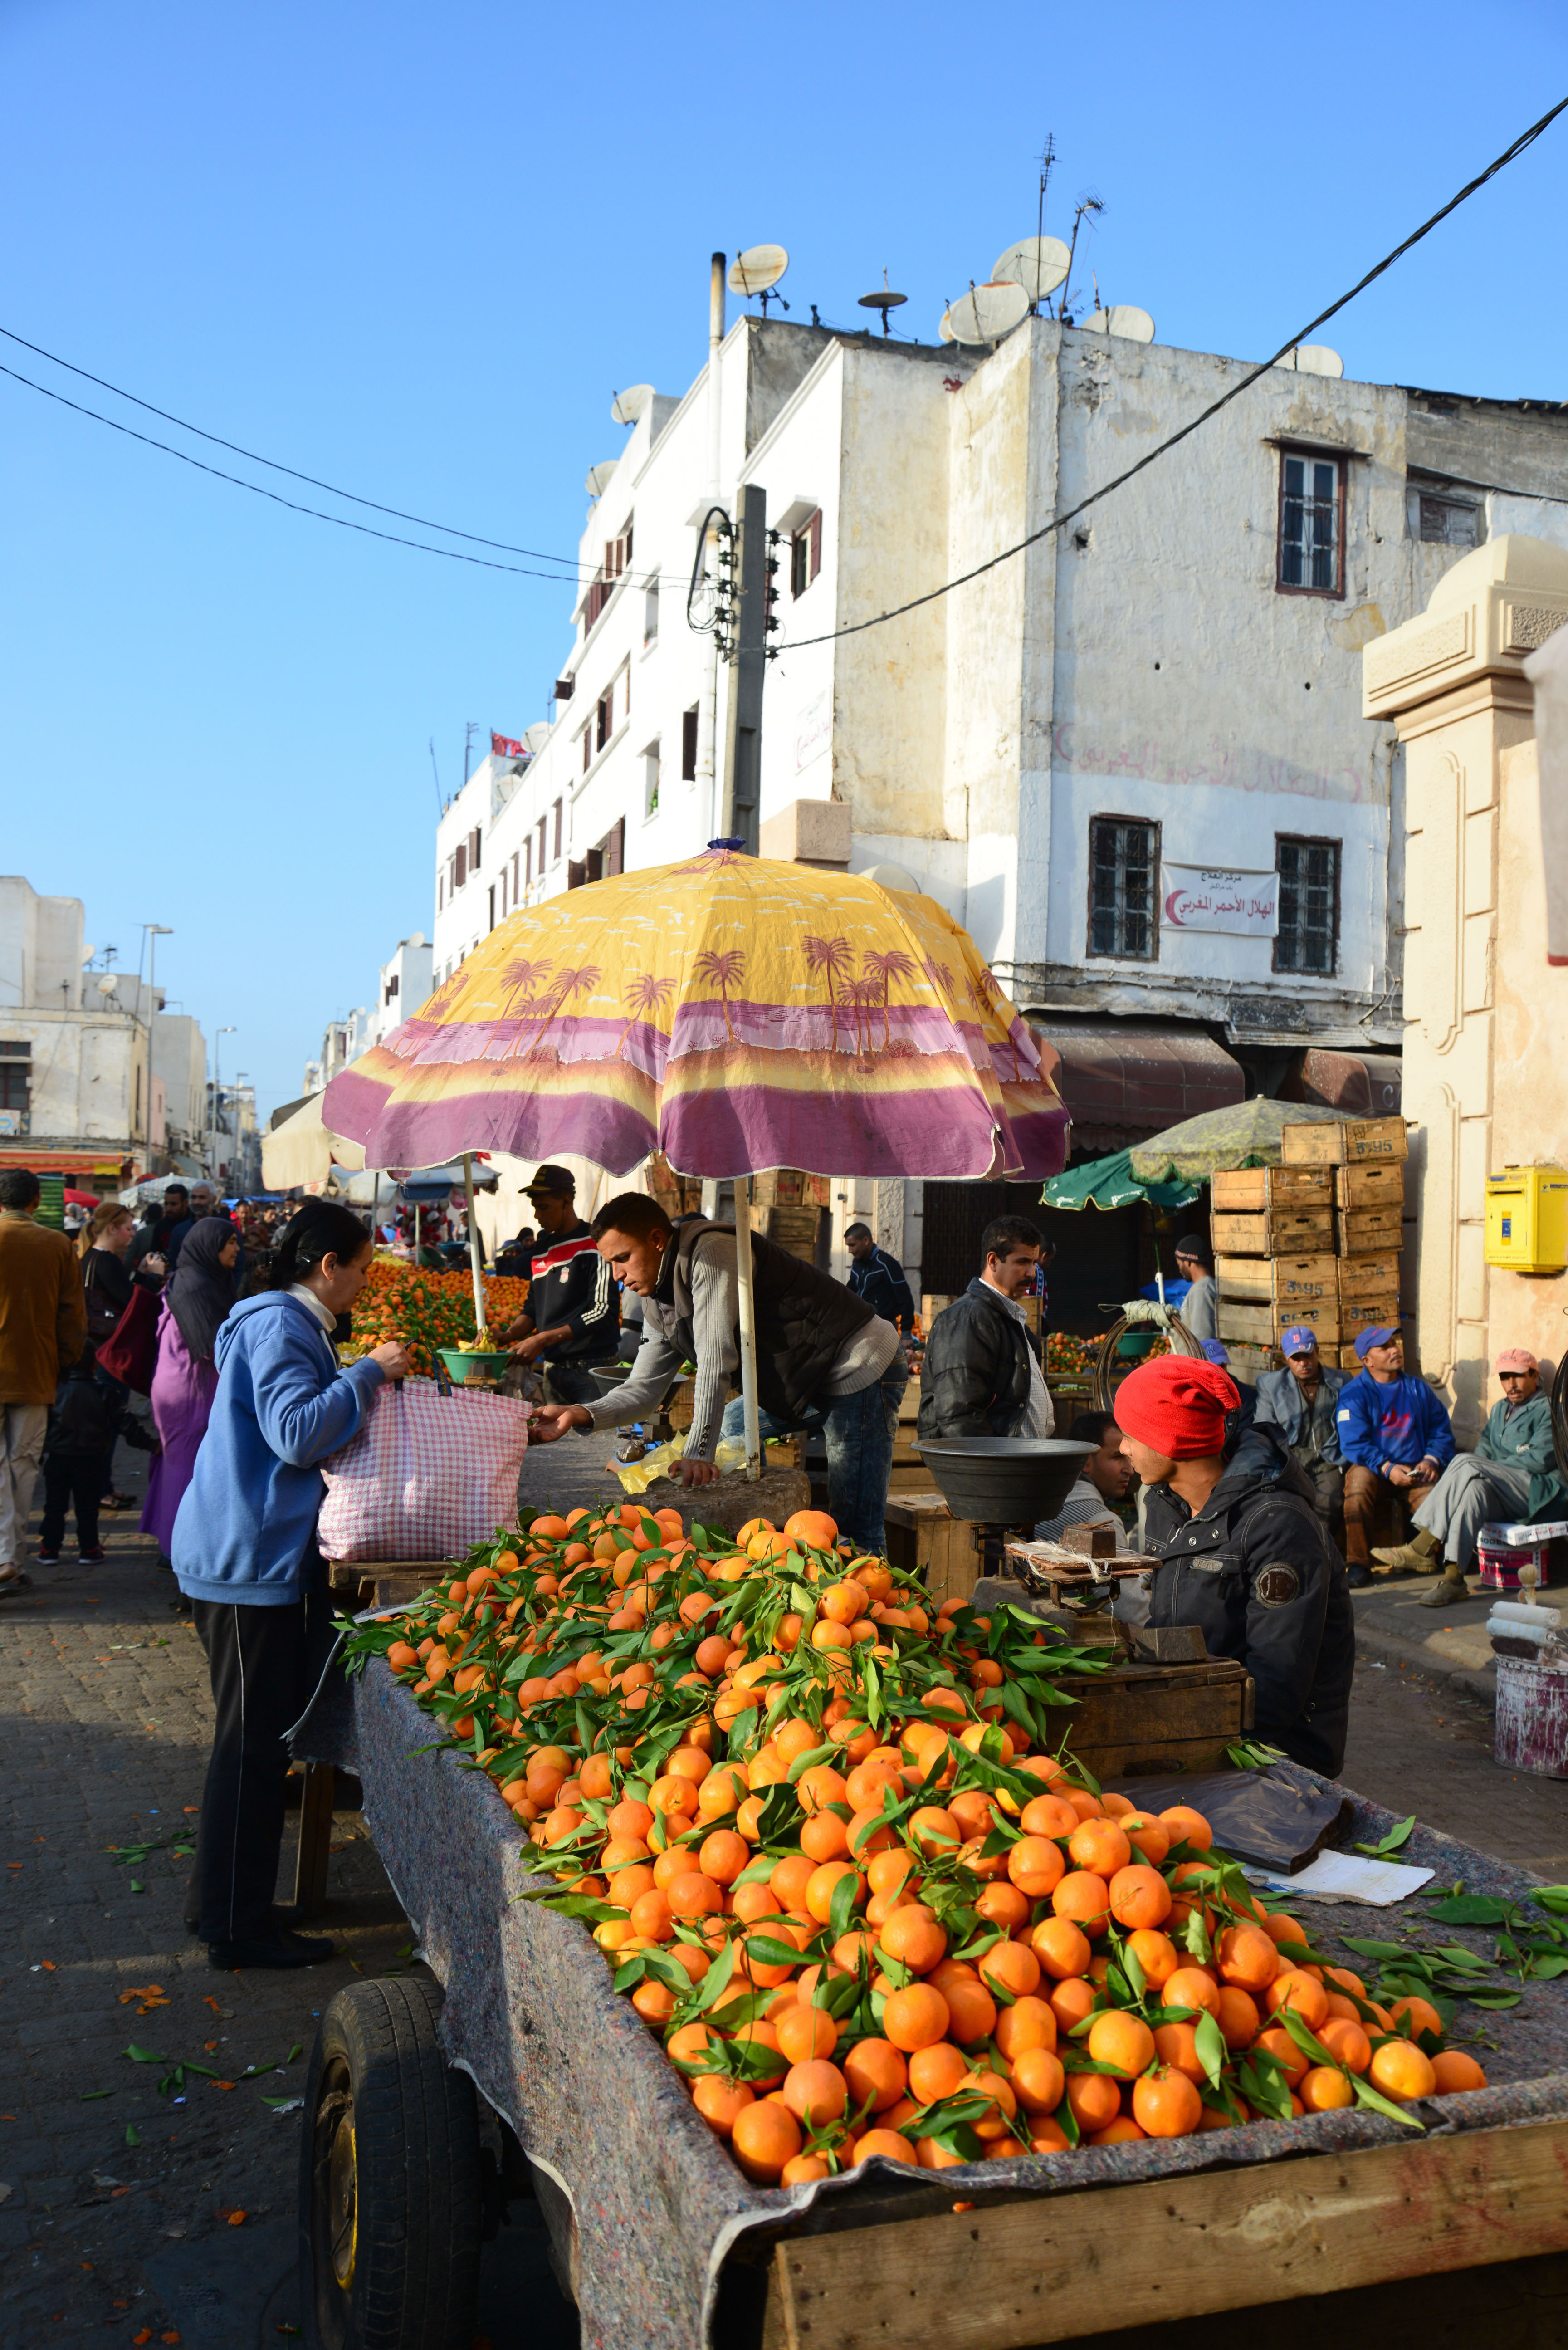 Fruit stalls in Old Medina, Casa-Anfa District, Casablanca, Grand Casablanca Region, Kingdom of Morocco. Image shot 2014. Exact date unknown.